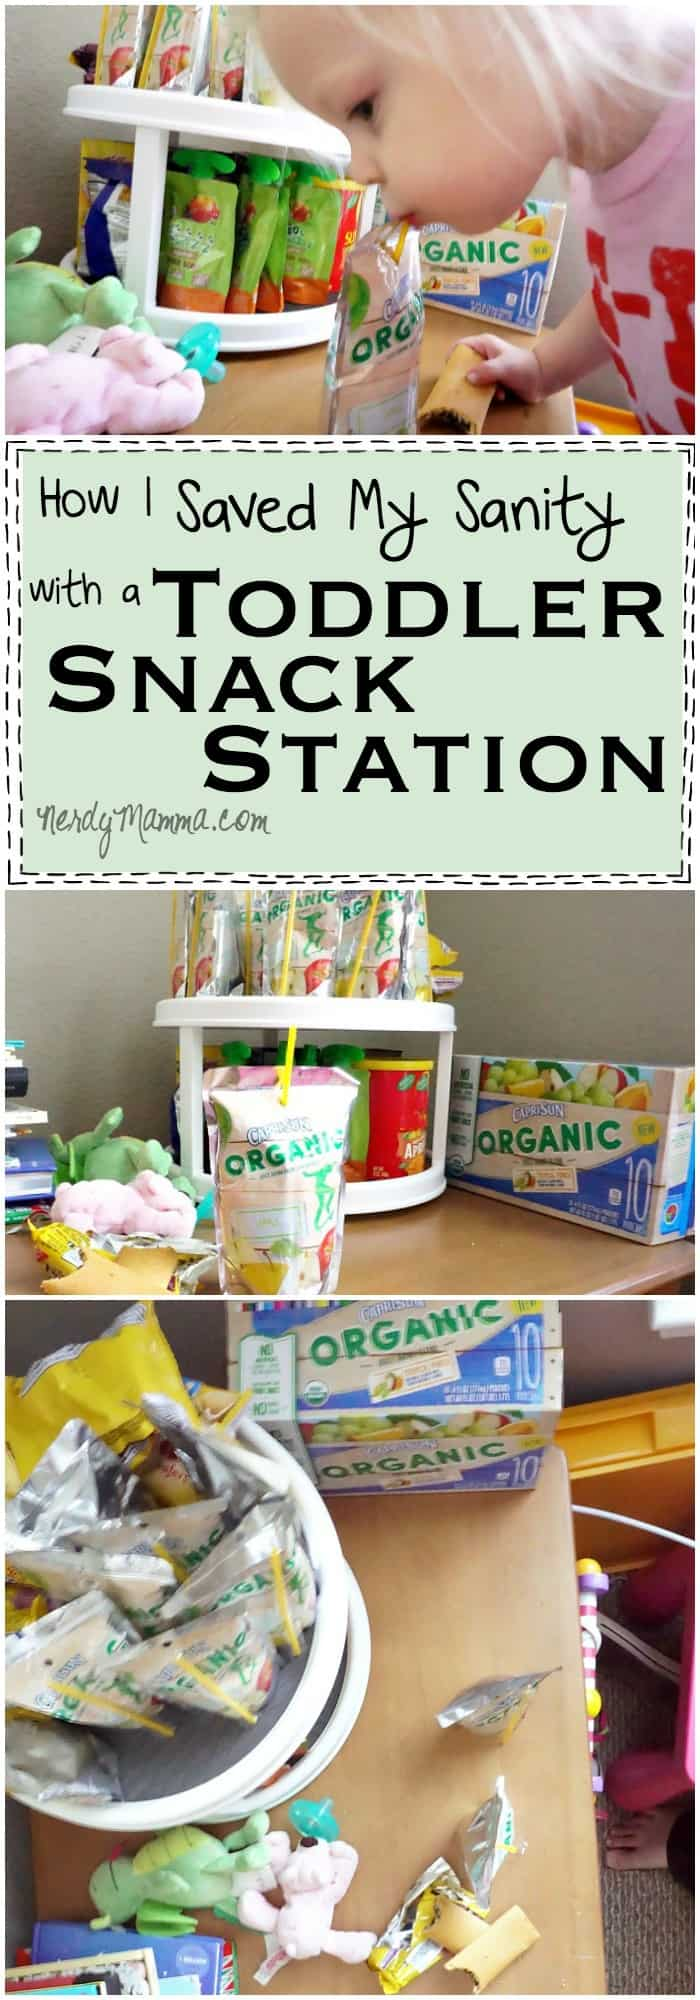 I've never thought of setting up a Toddler Snack Station--such a great idea!